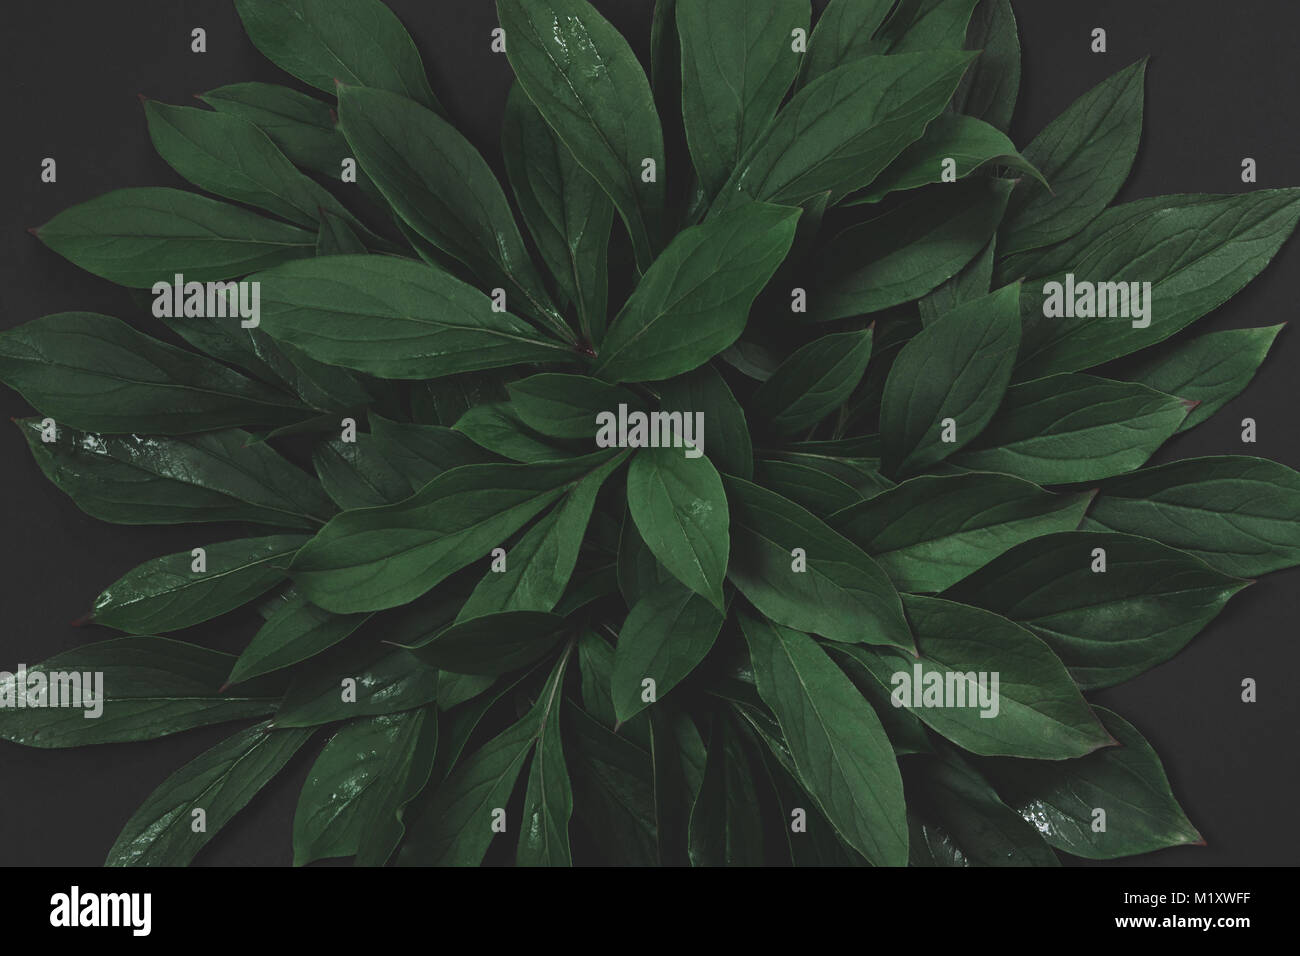 Creative layout made of green leaves on black background. Top view. Nature concept. Toned image. Stock Photo